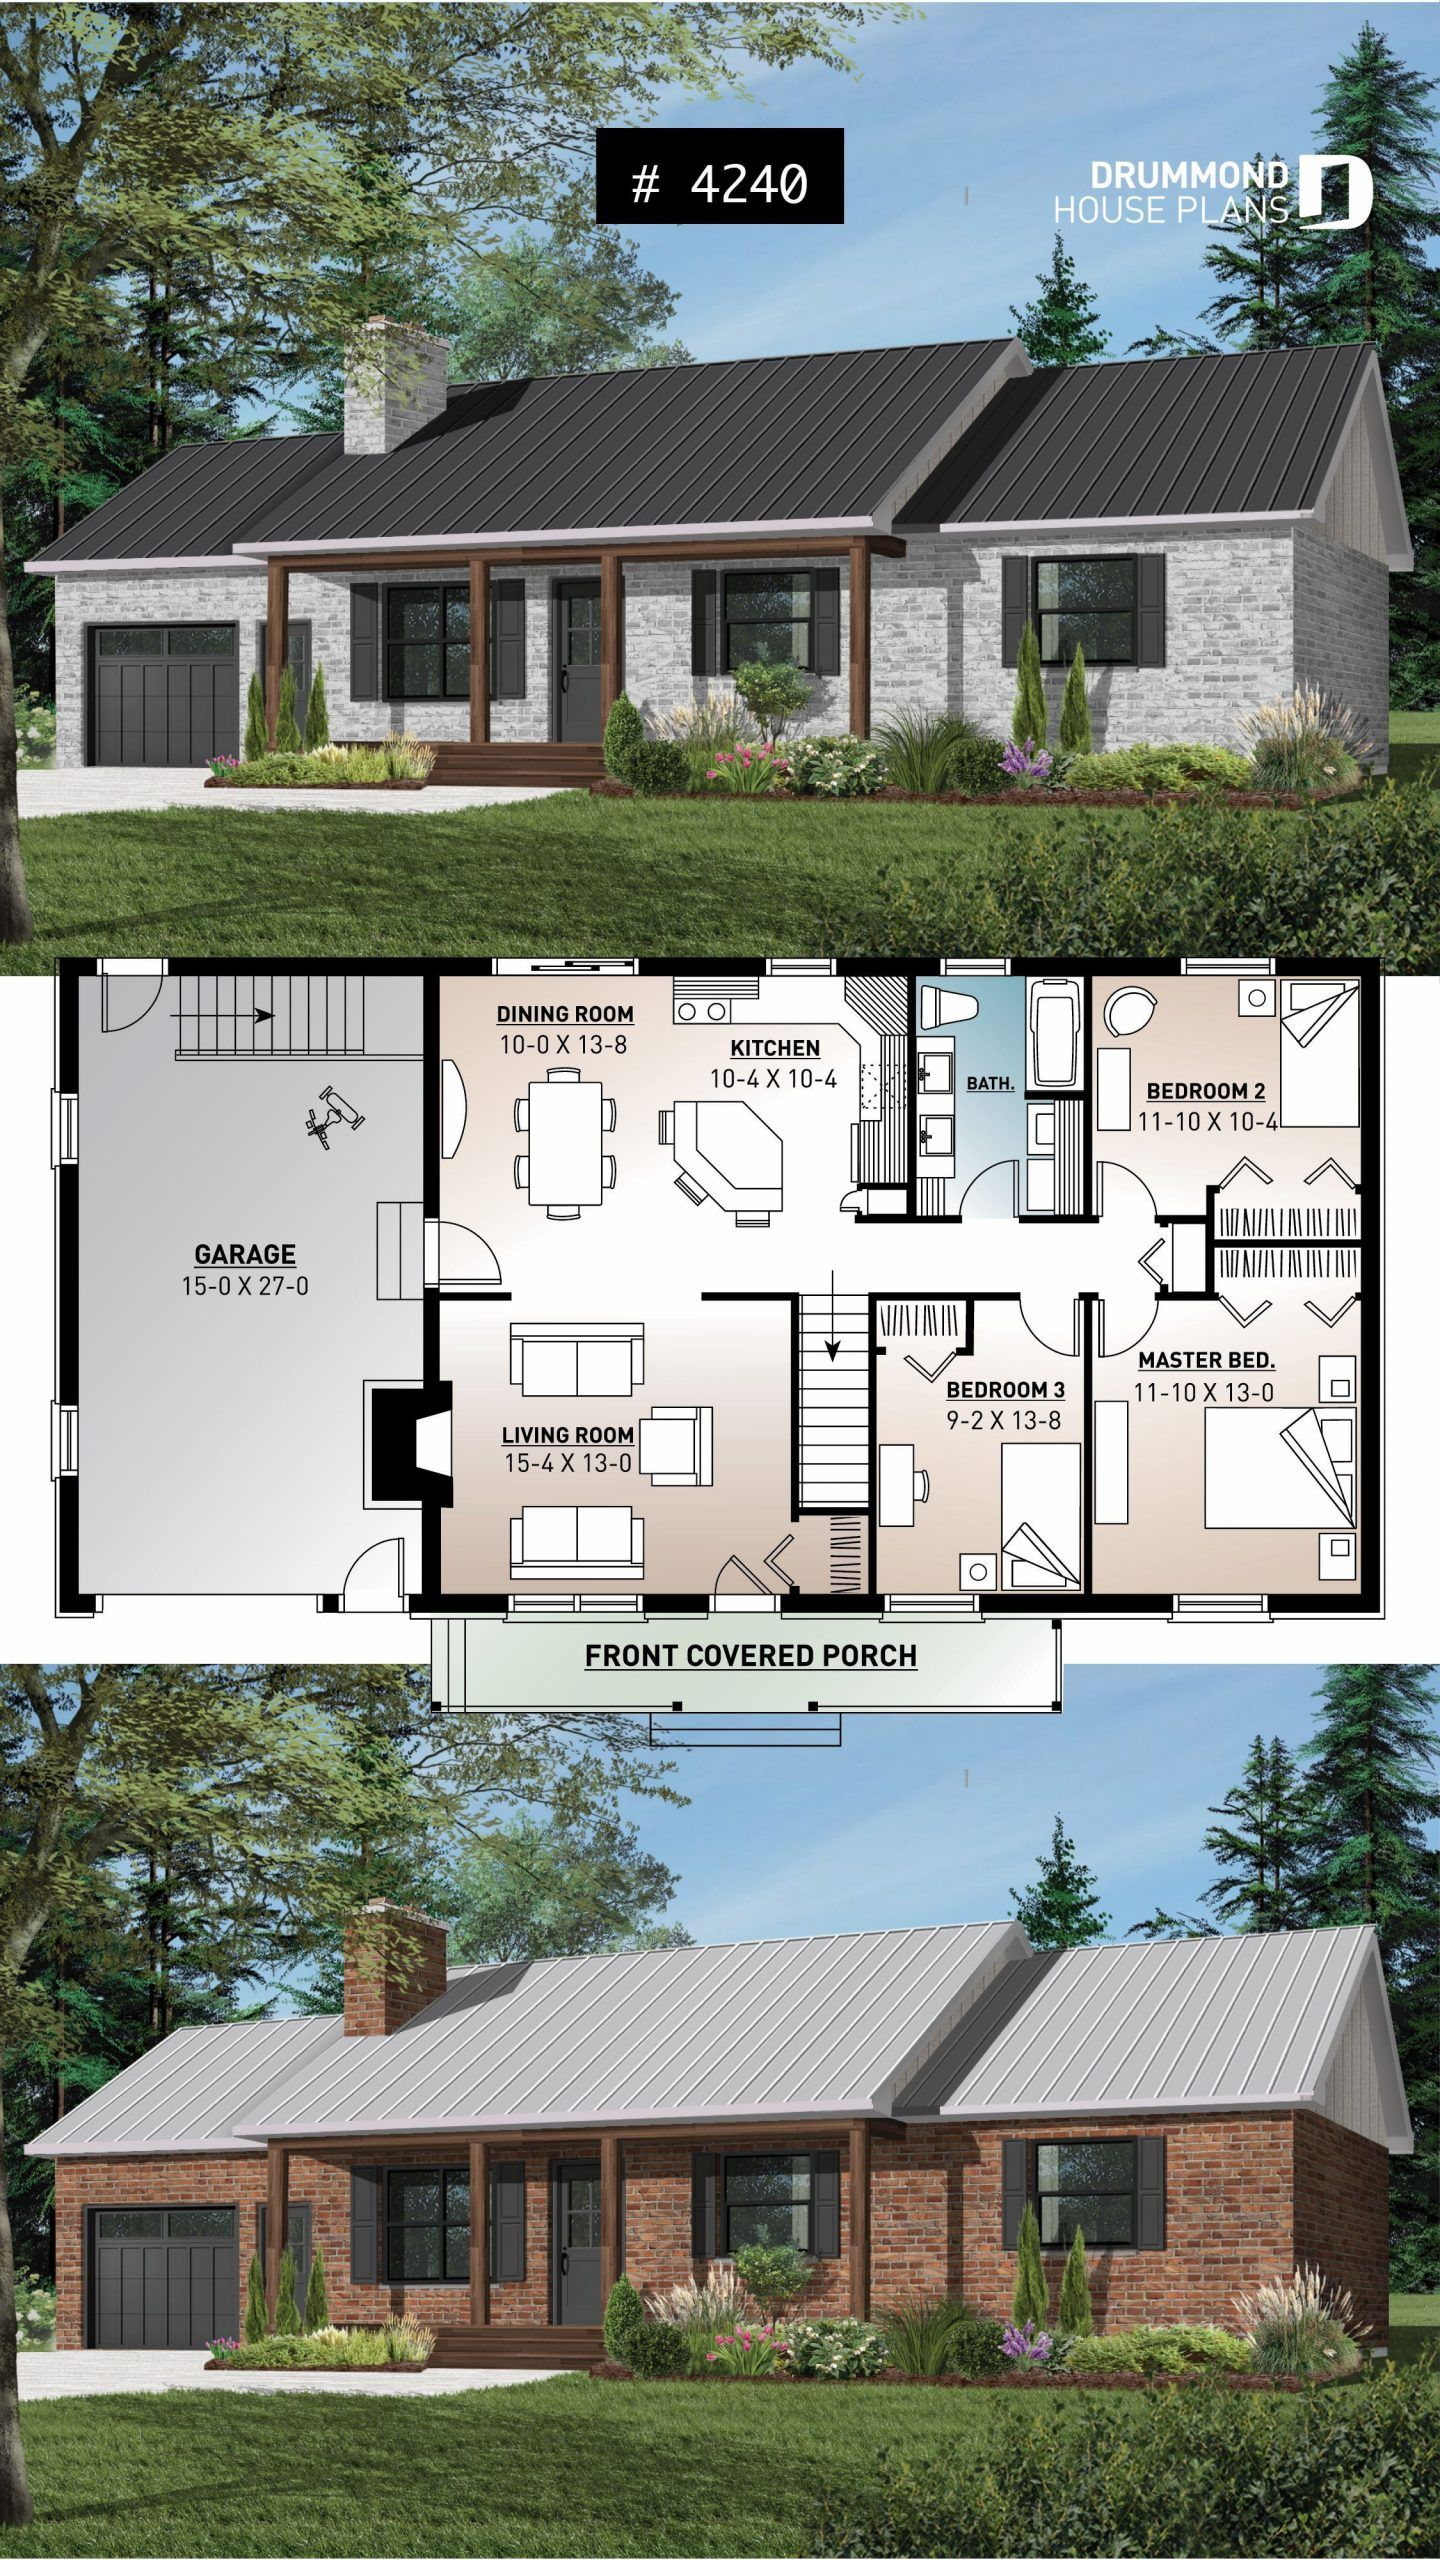 Economical Ranch House Plans 2021 Bungalow House Plans Traditional House Plans Farmhouse Style House